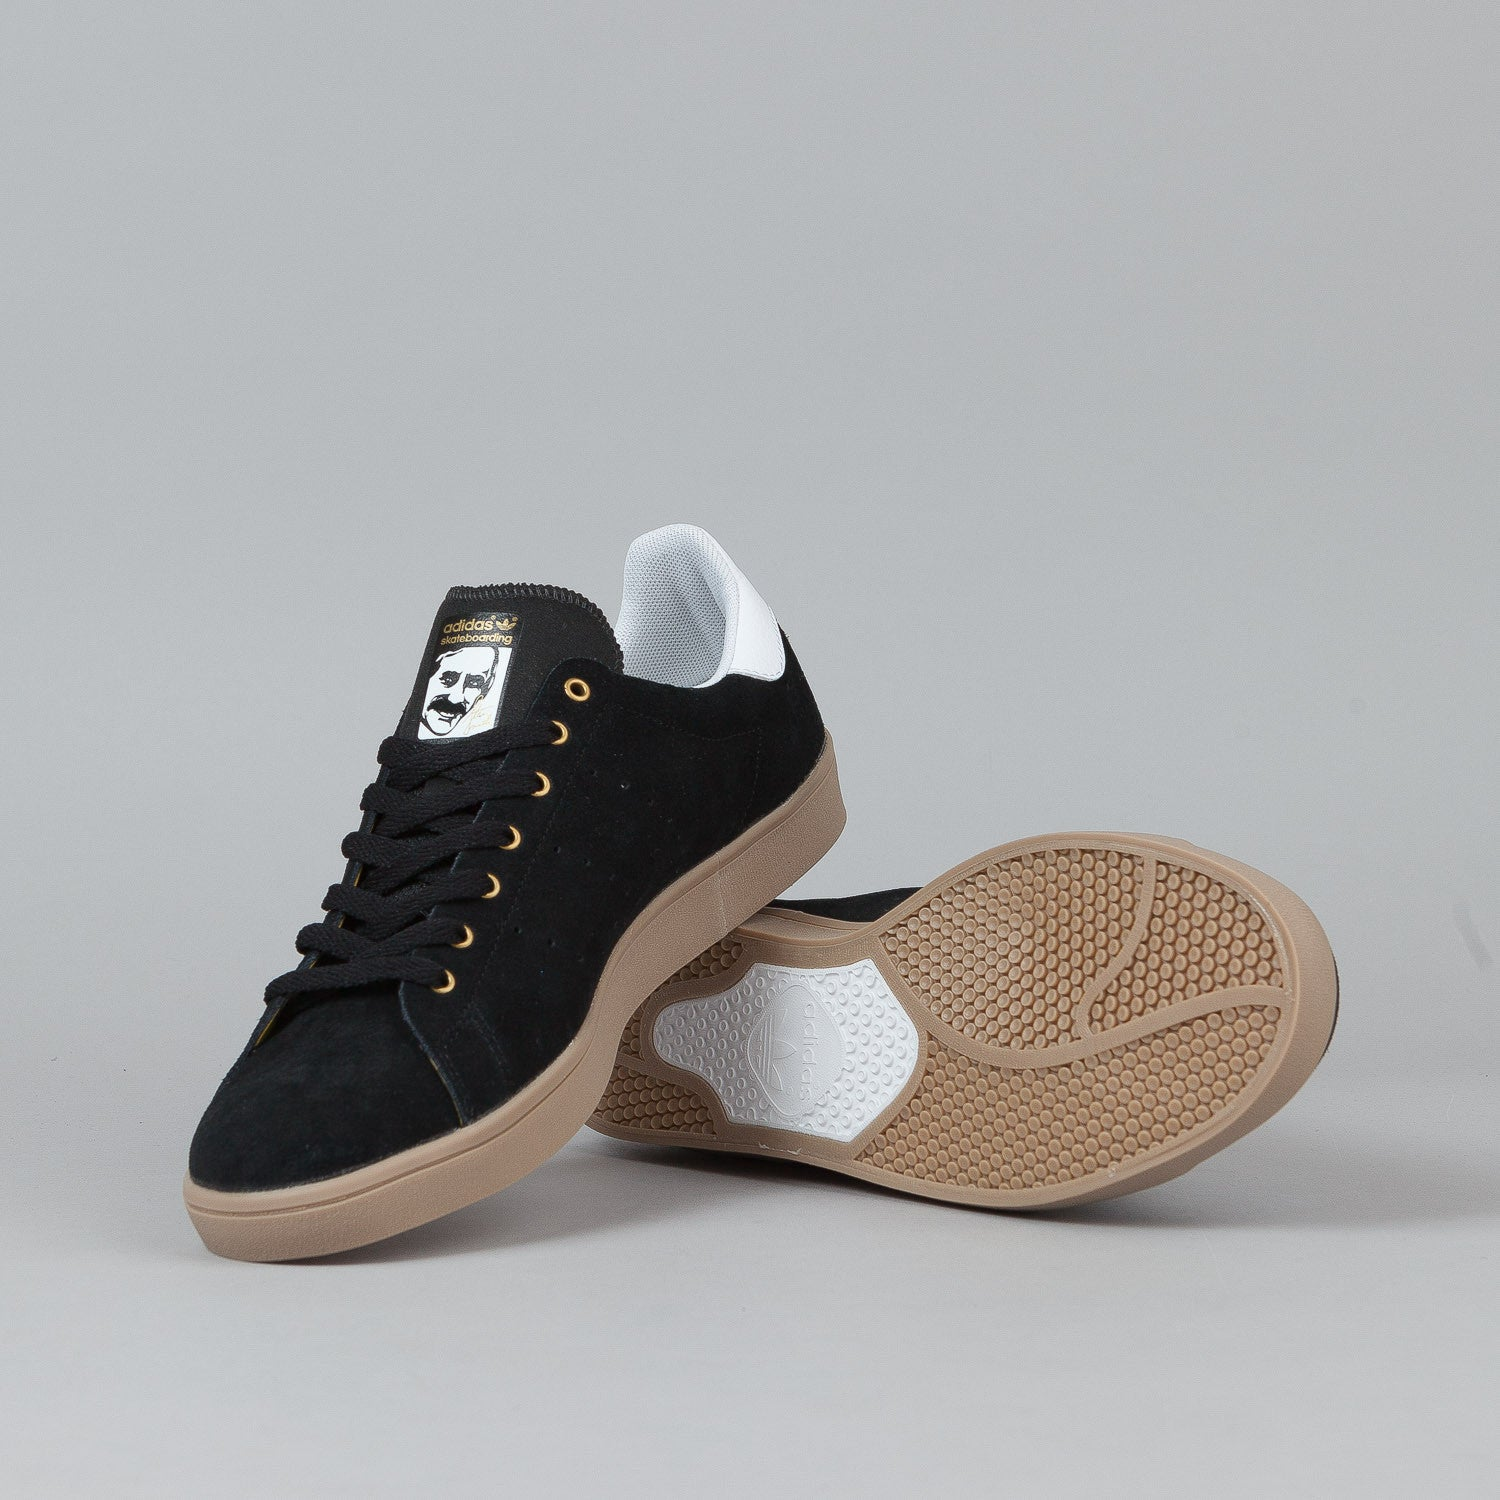 Adidas Stan Smith Vulc Shoes - Black / Black / White